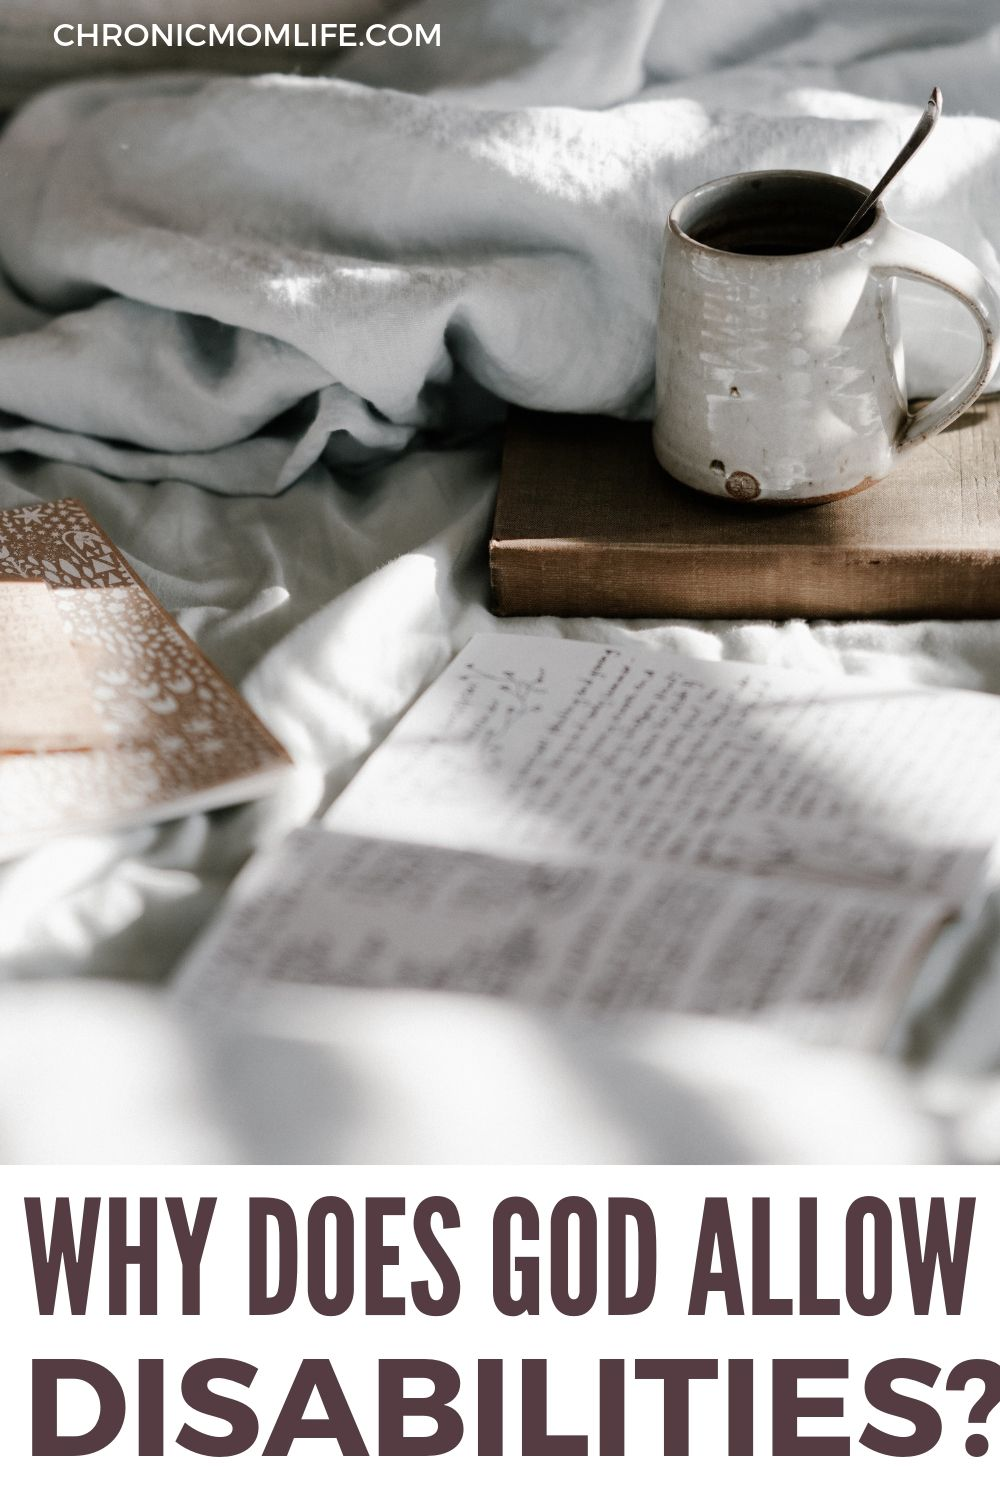 Why does God allow disability?